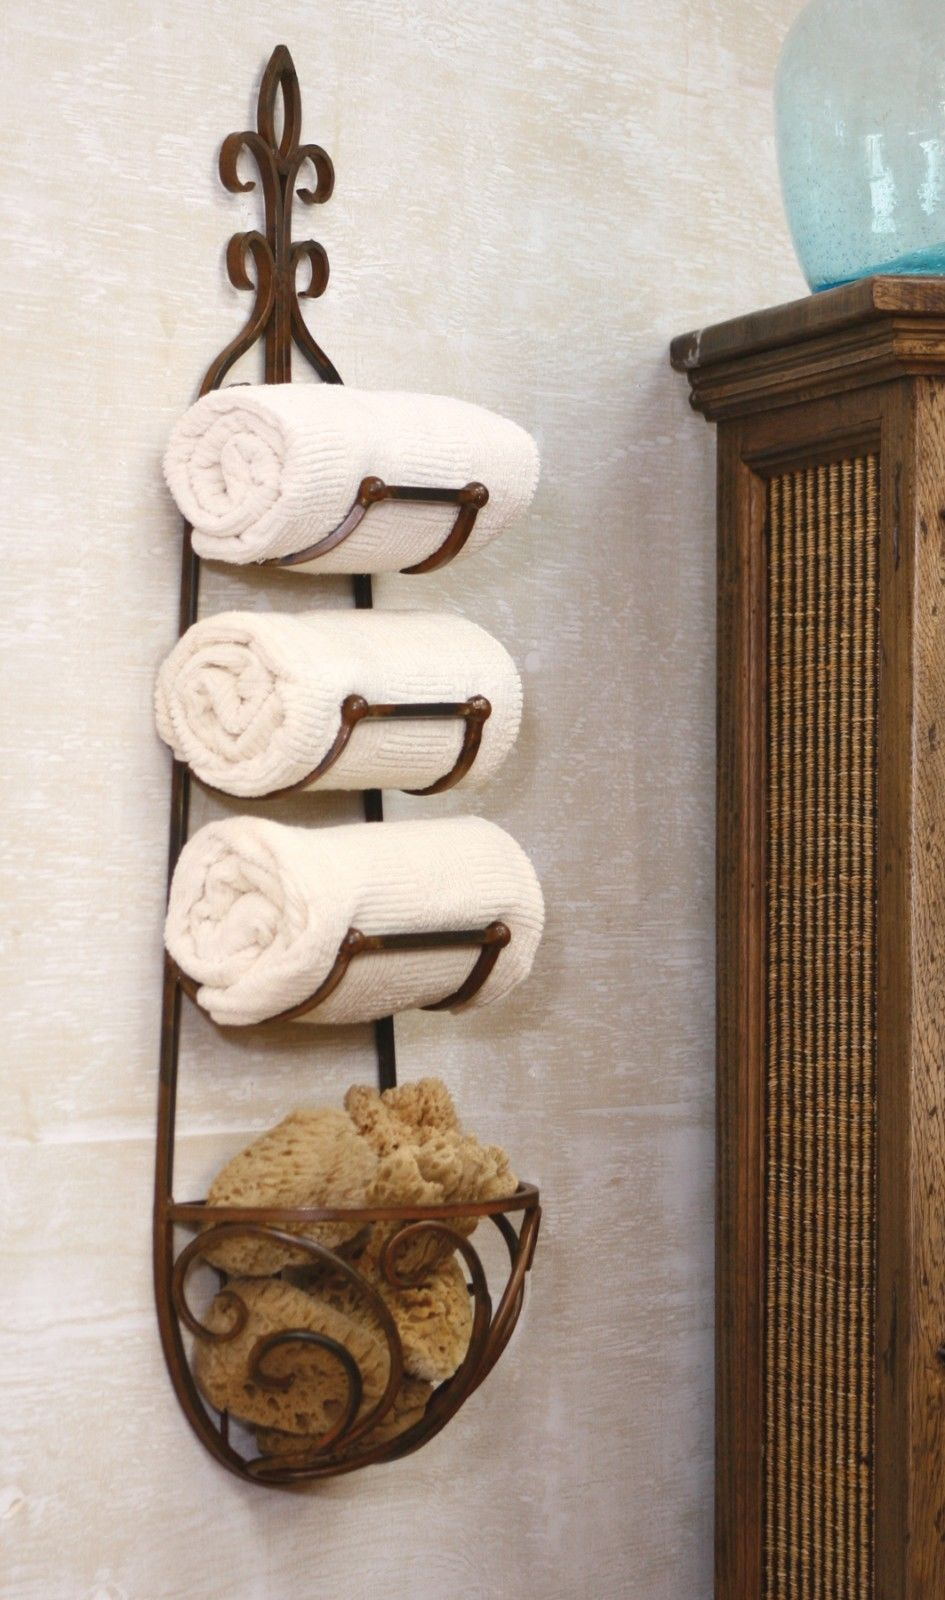 TUSCAN/COUNTRY WROUGHT IRON TOWEL RACK WITH BASKET